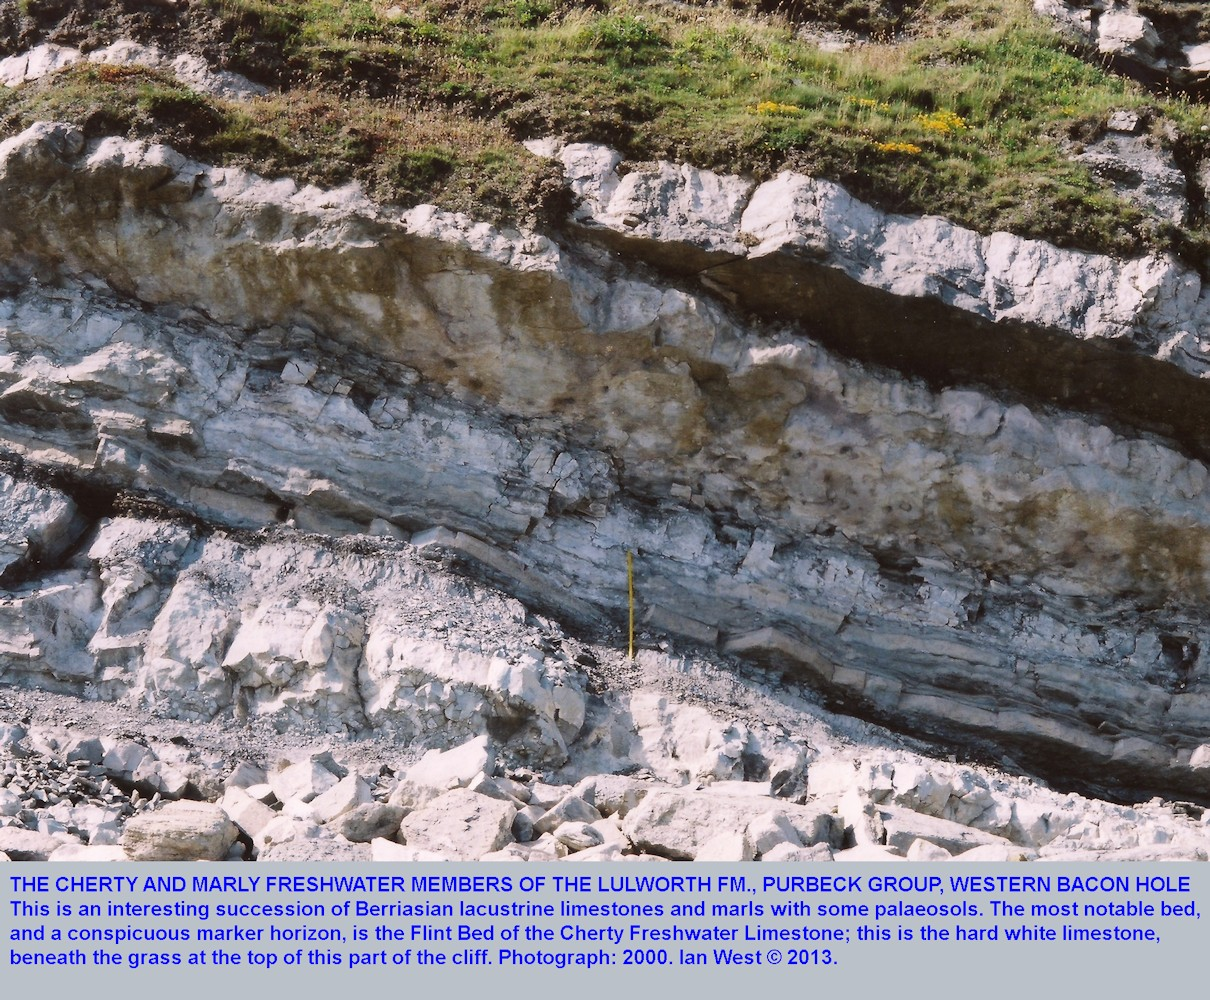 The Cherty Freshwater Member above Marly Freshwater Member of the Lulworth Formation, Purbeck Group, at the western end of Bacon Hole, Mupe Bay, Dorset, 2000